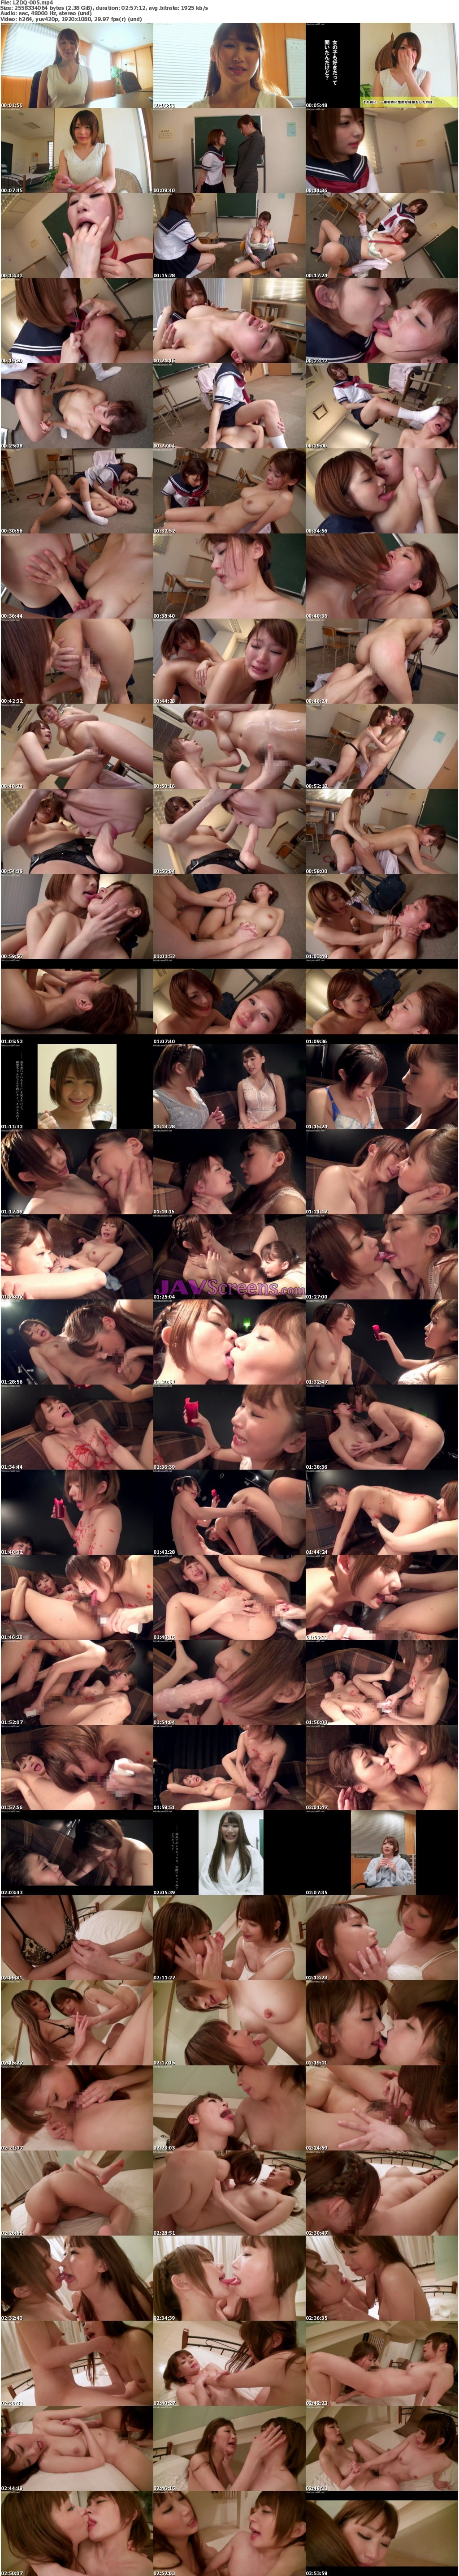 LZDQ-005.jpg - JAV Screenshot